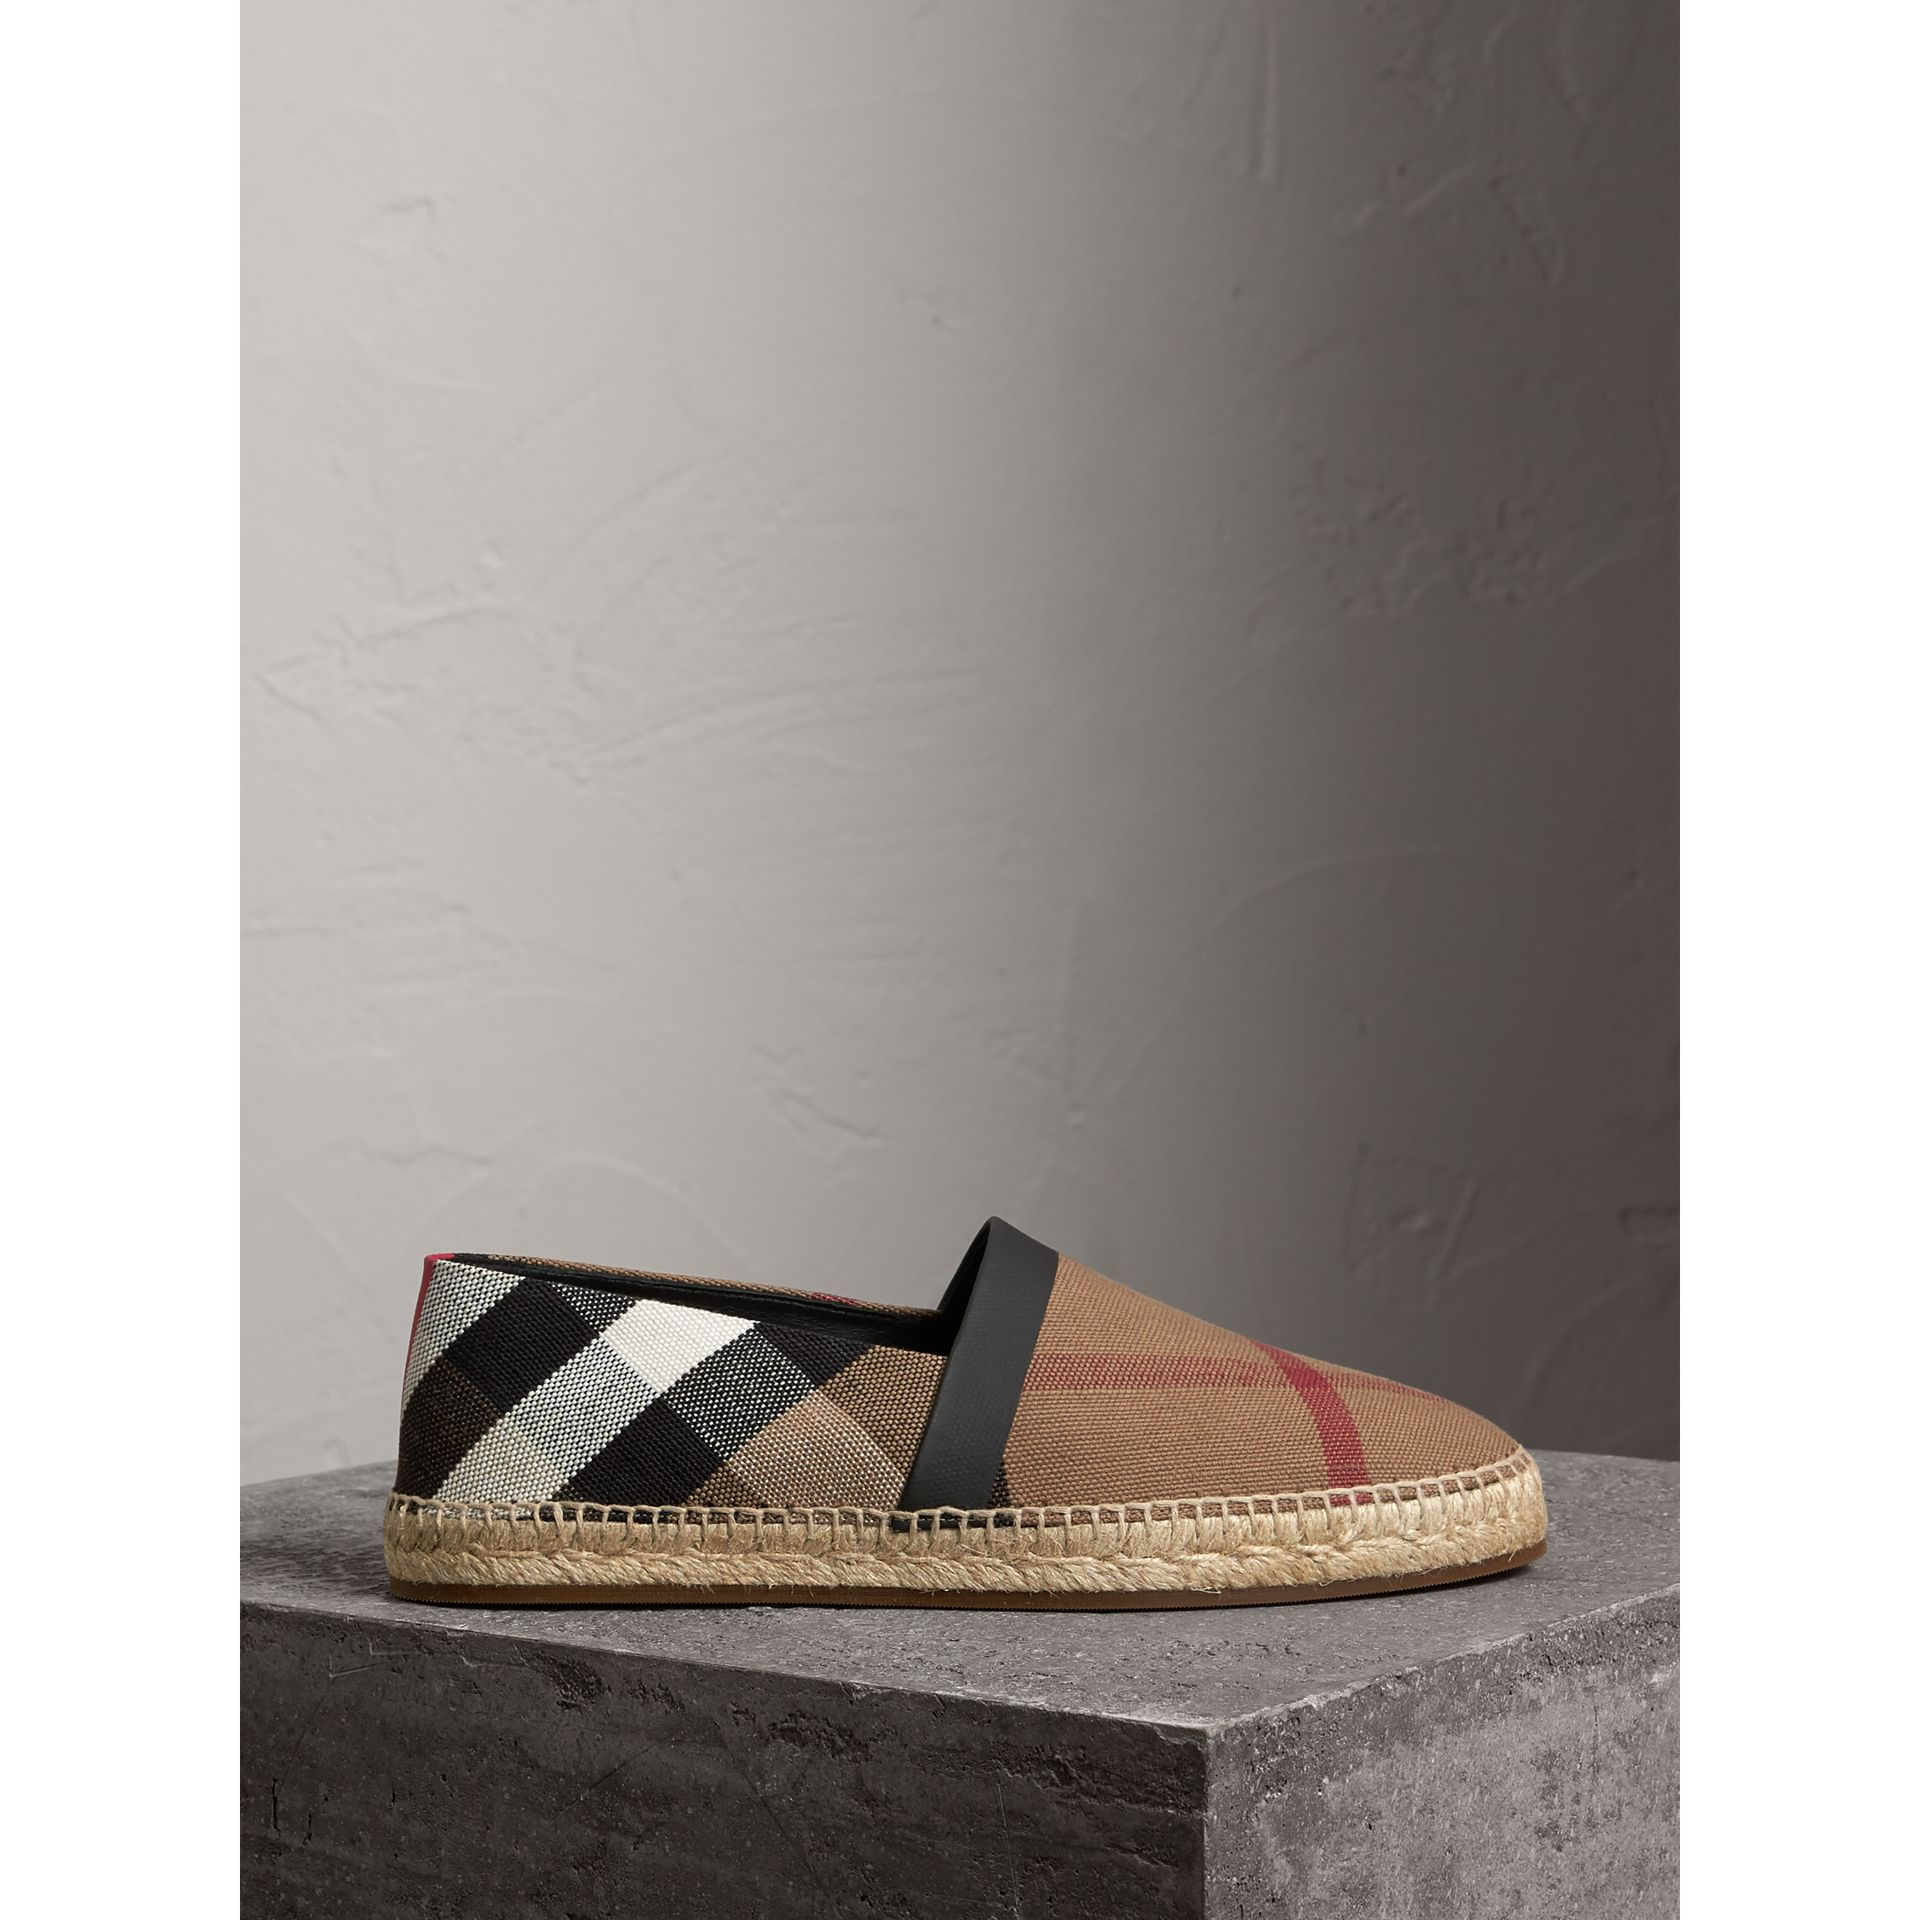 Check Cotton Canvas Seam-sealed Espadrilles in Classic - Men | Burberry - gallery image 3